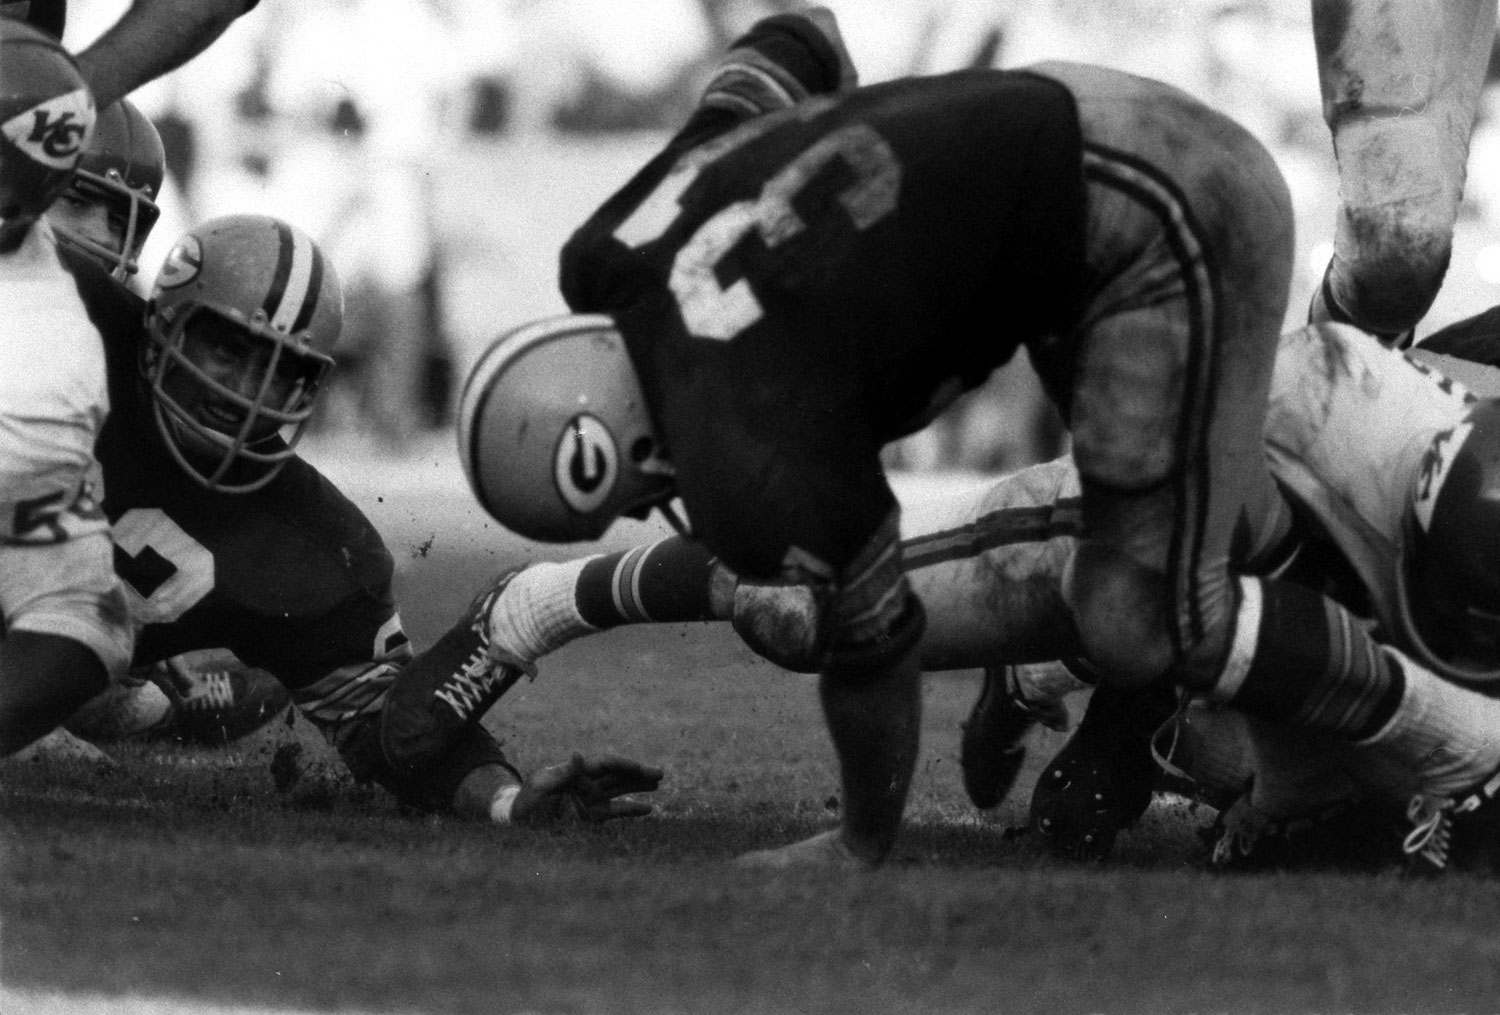 <b>Not published in LIFE.</b> Jim Taylor, Super Bowl I, 1967. Packer lineman at left is the great Fuzzy Thurston.